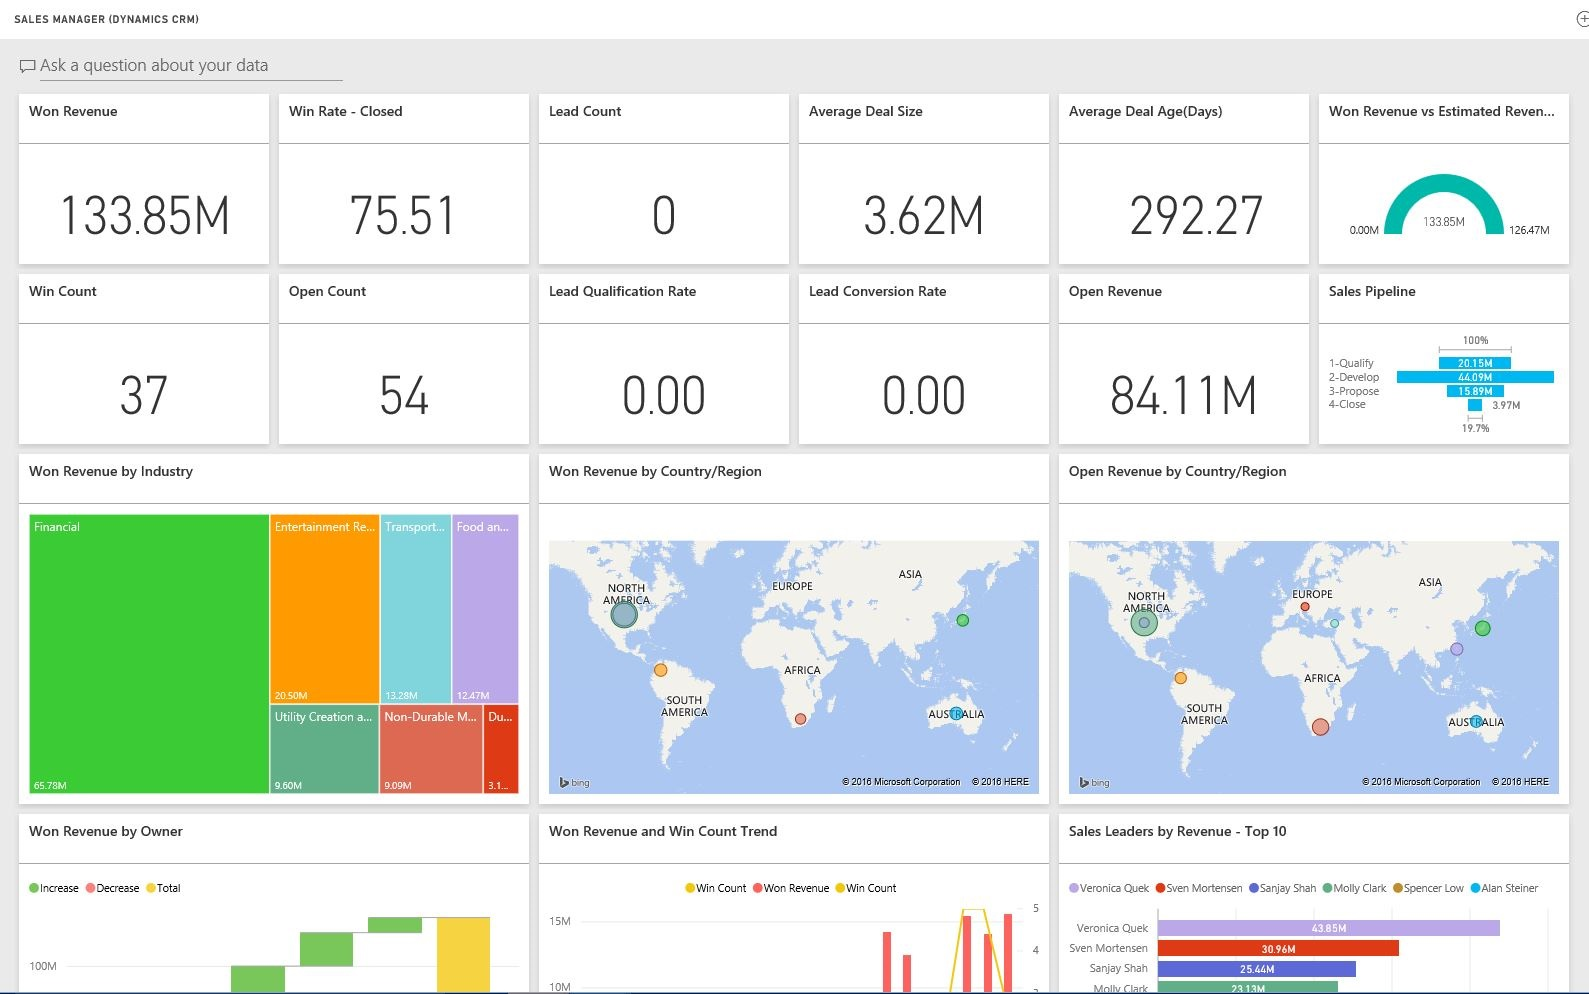 Connect to microsoft dynamics with power bi power bi microsoft after connecting youll see a dashboard customized for a sales manager or service manager populated with your own data xflitez Images